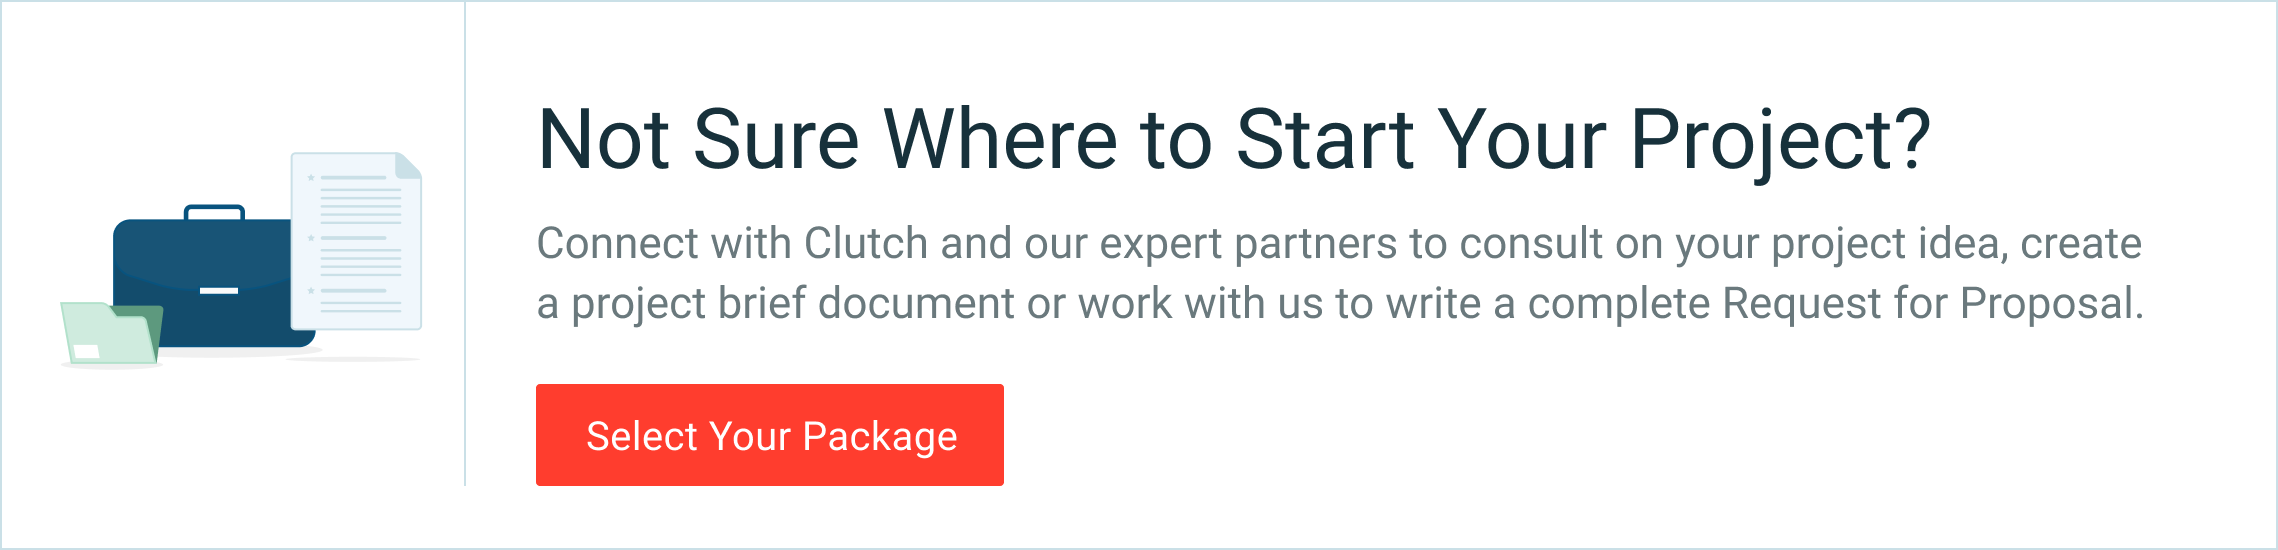 Connect with Clutch to consult on your project idea, create a project brief or to write a Request for Proposal.